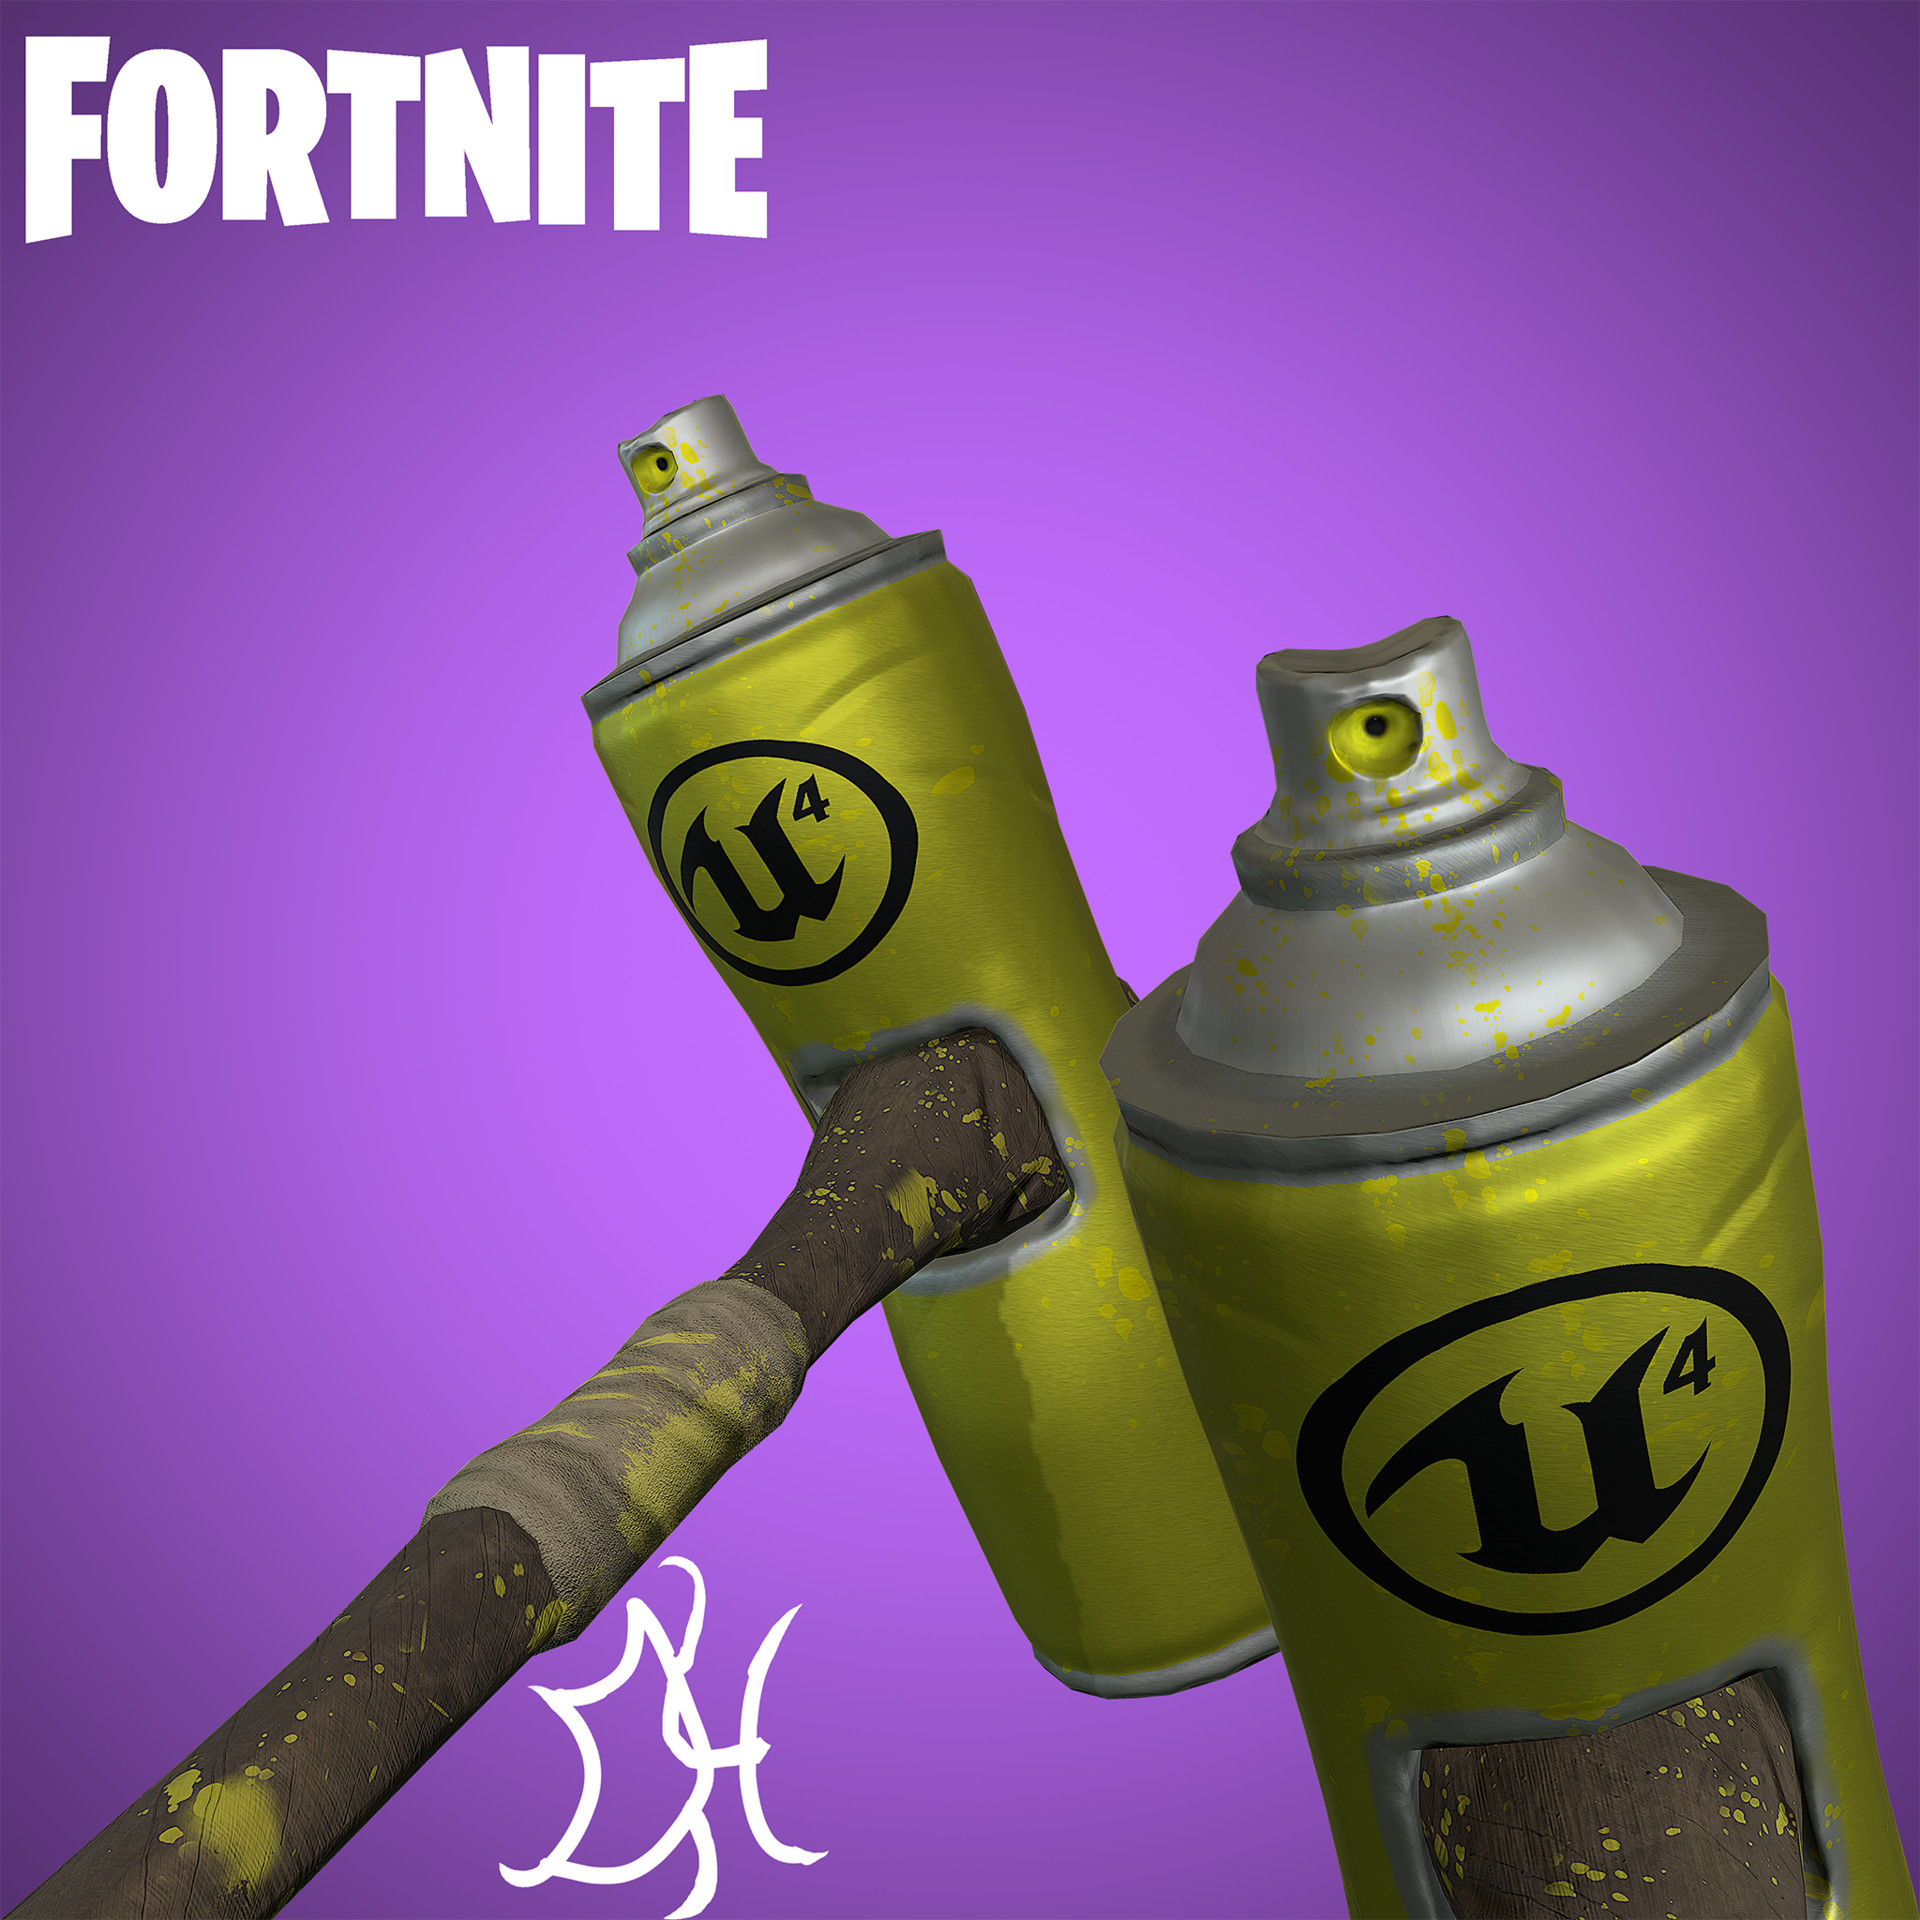 close up - fortnite new spray paint